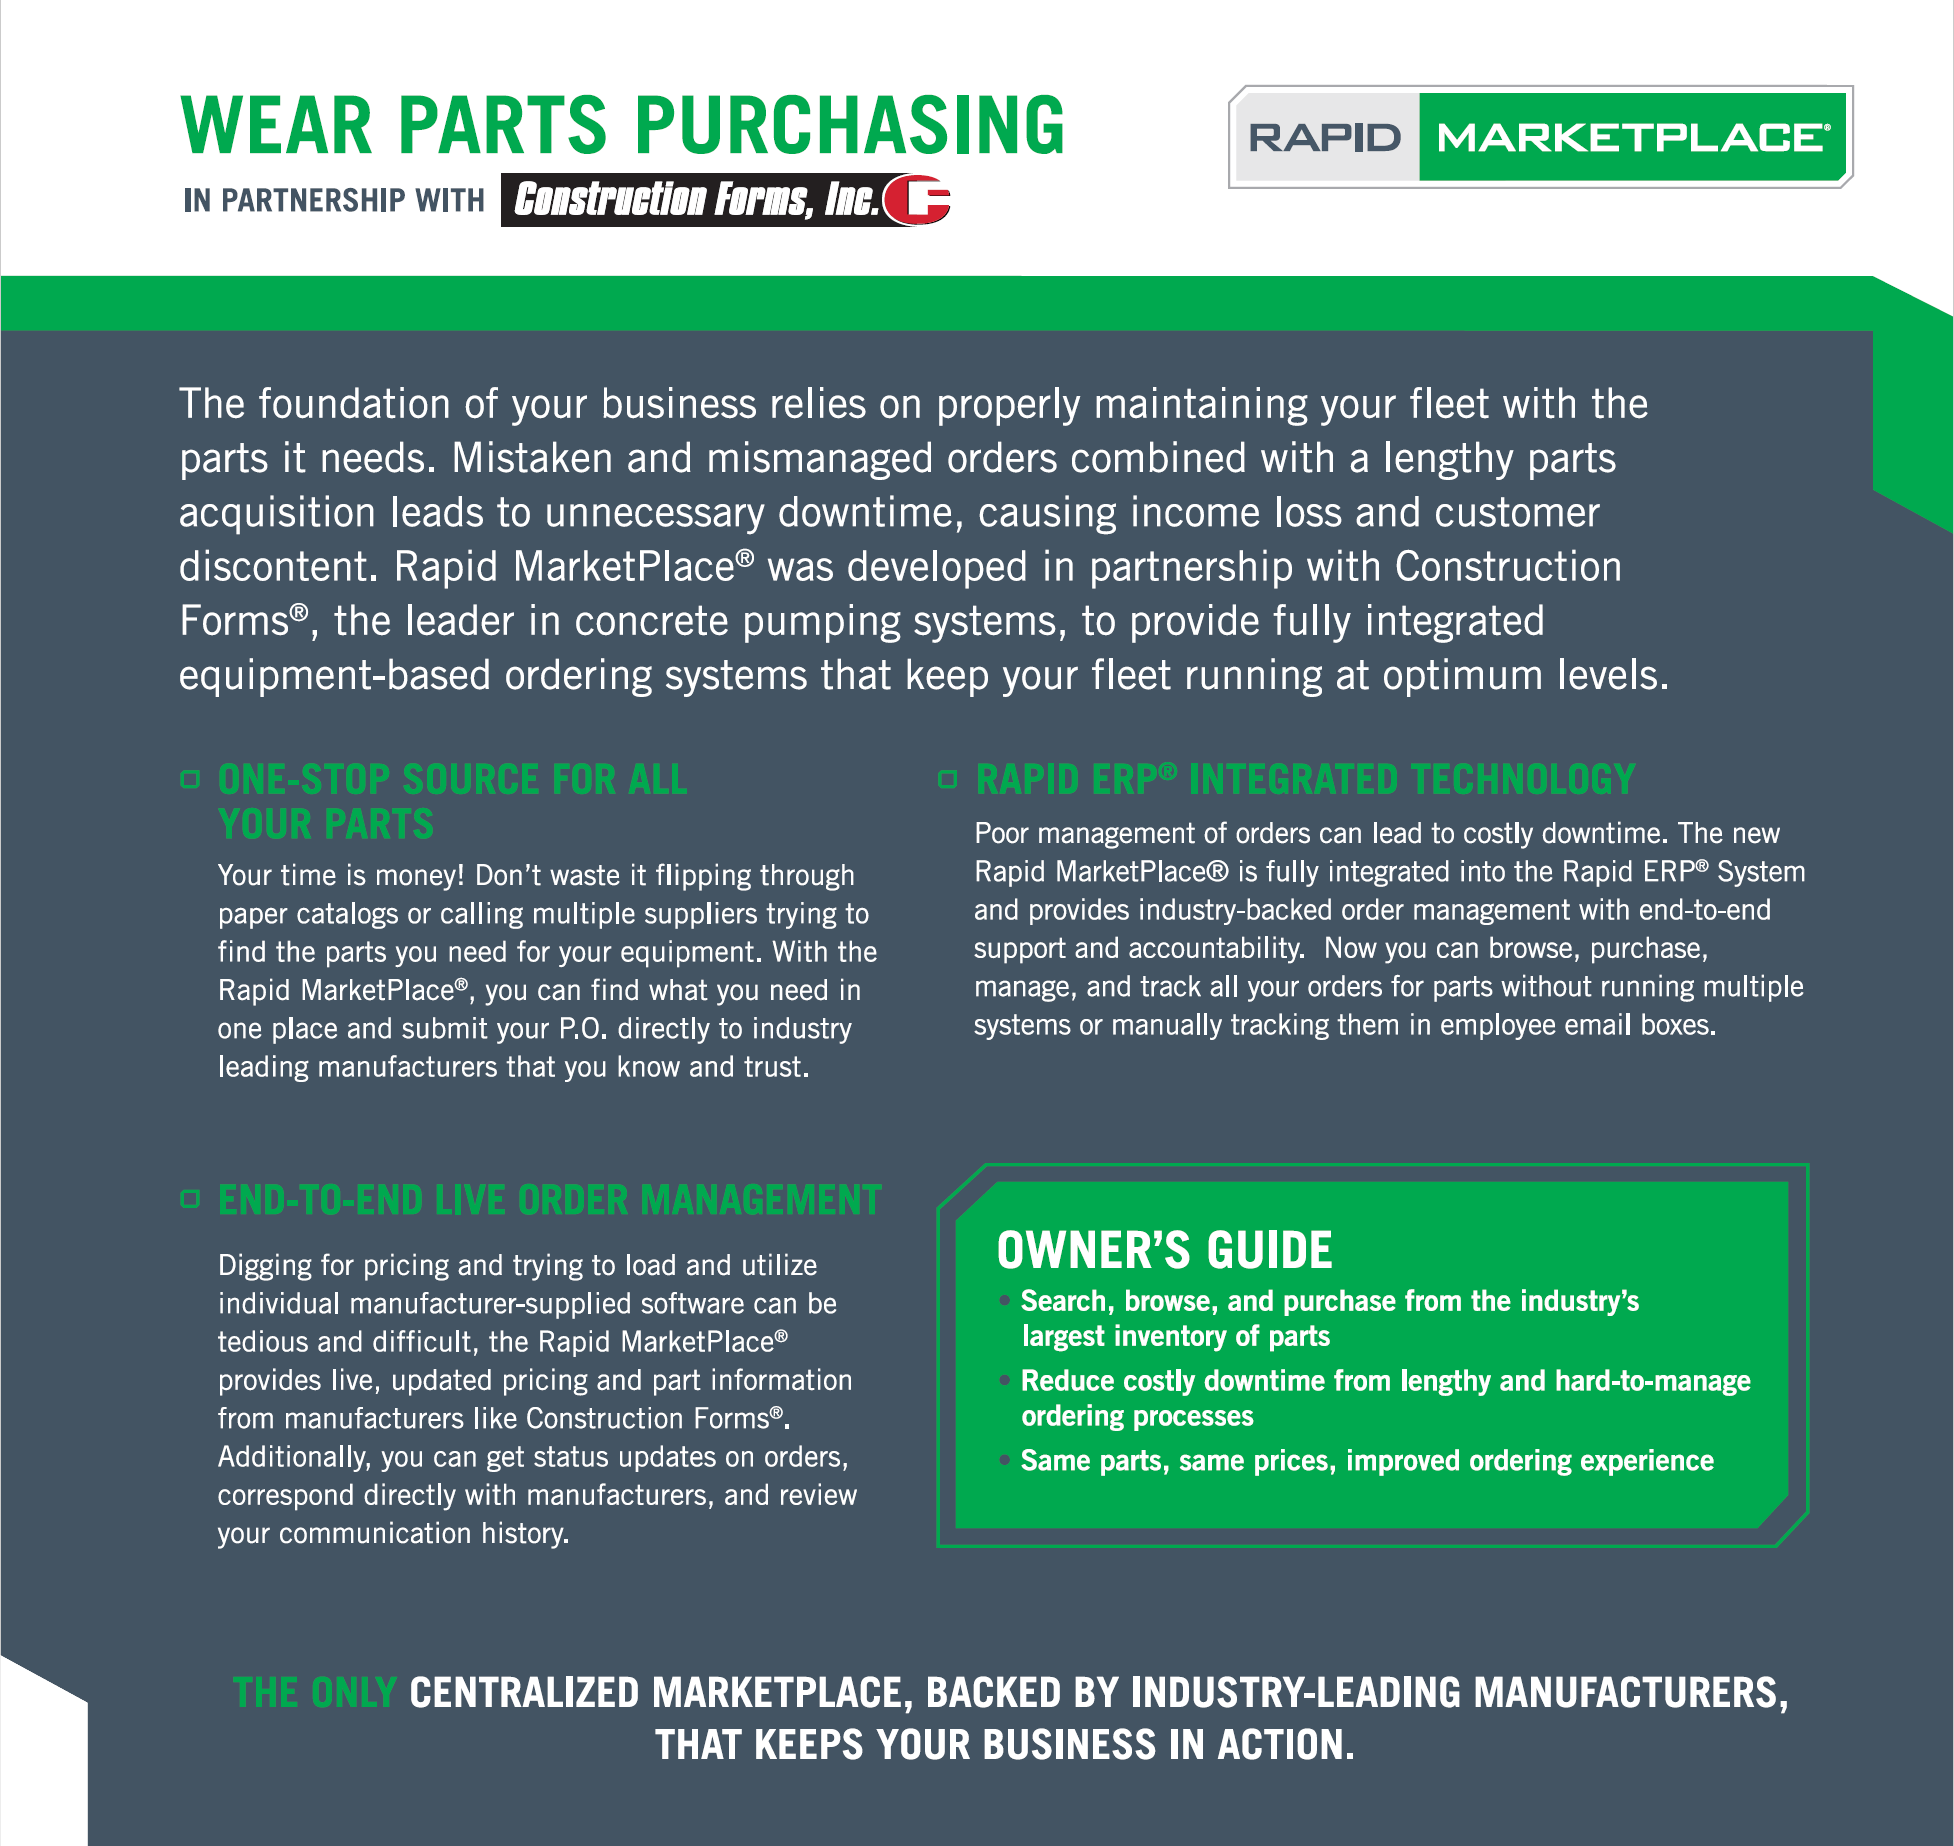 Rapid Marketplace - Wear Parts Purchasing